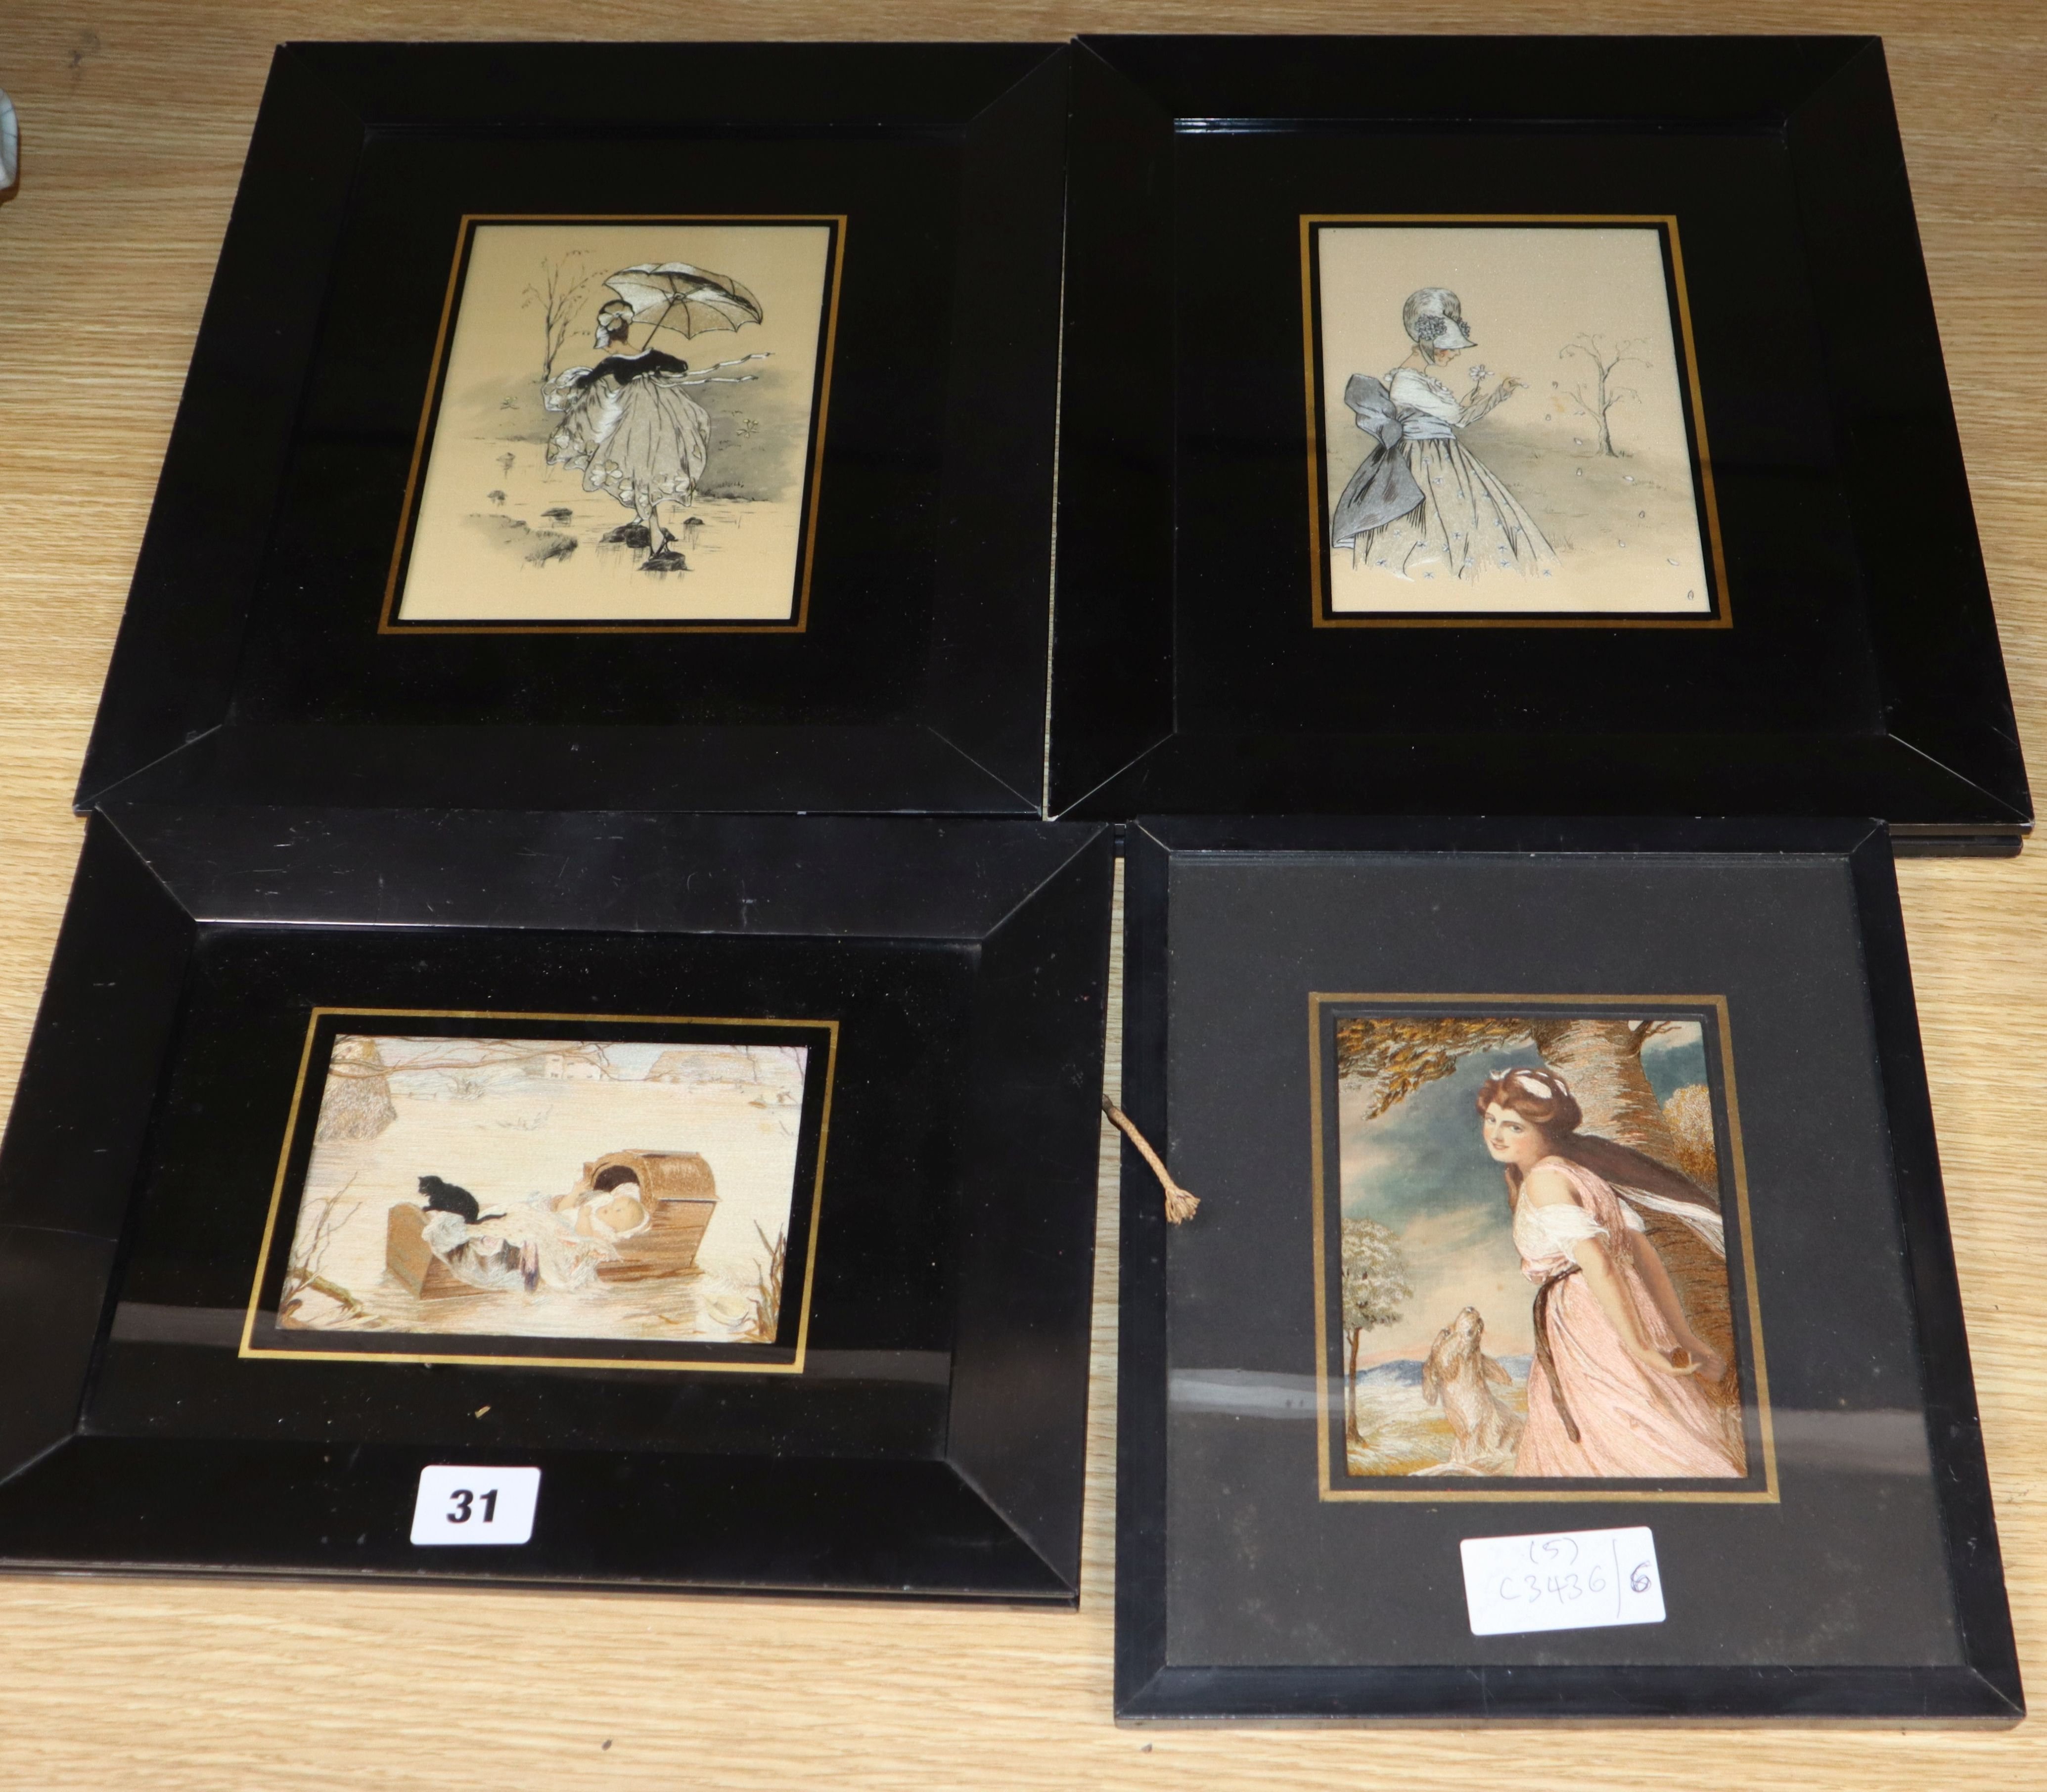 Lot 31 - K. Laing - four early 20th century silk embroidered drawings